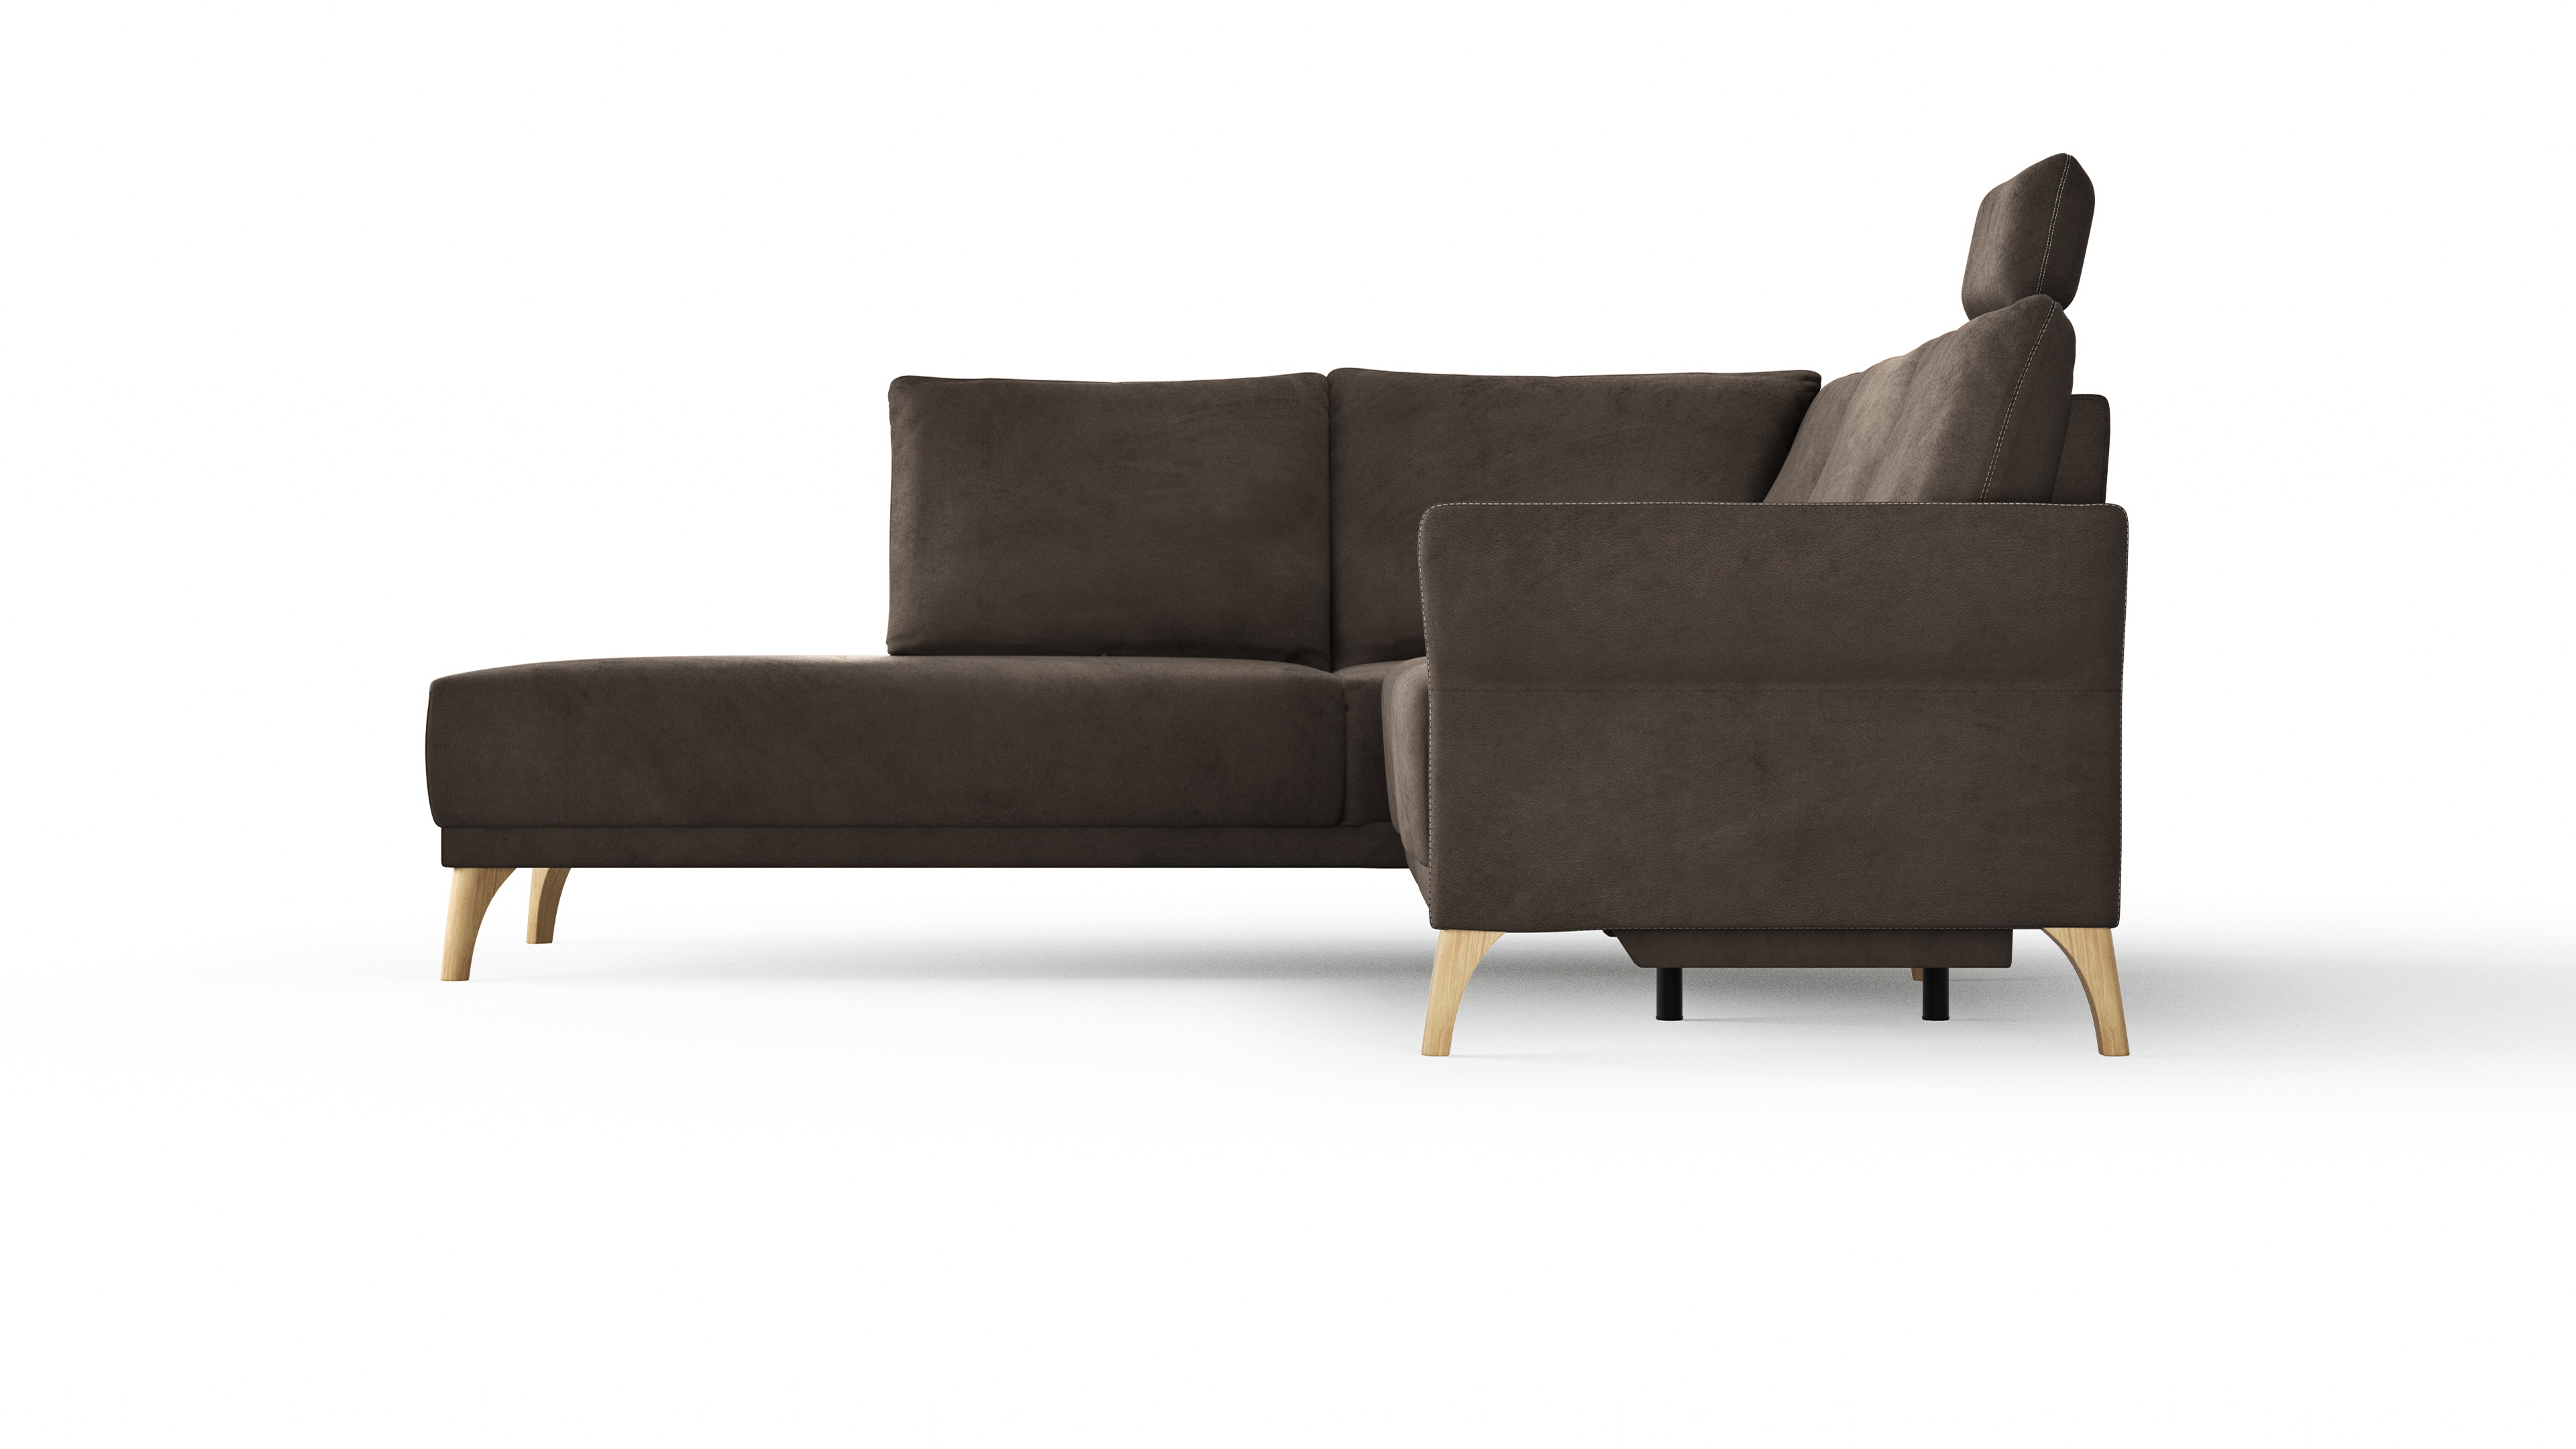 Global Comfort Ecksofa Rosario freisteller 2 102541 | Homepoet